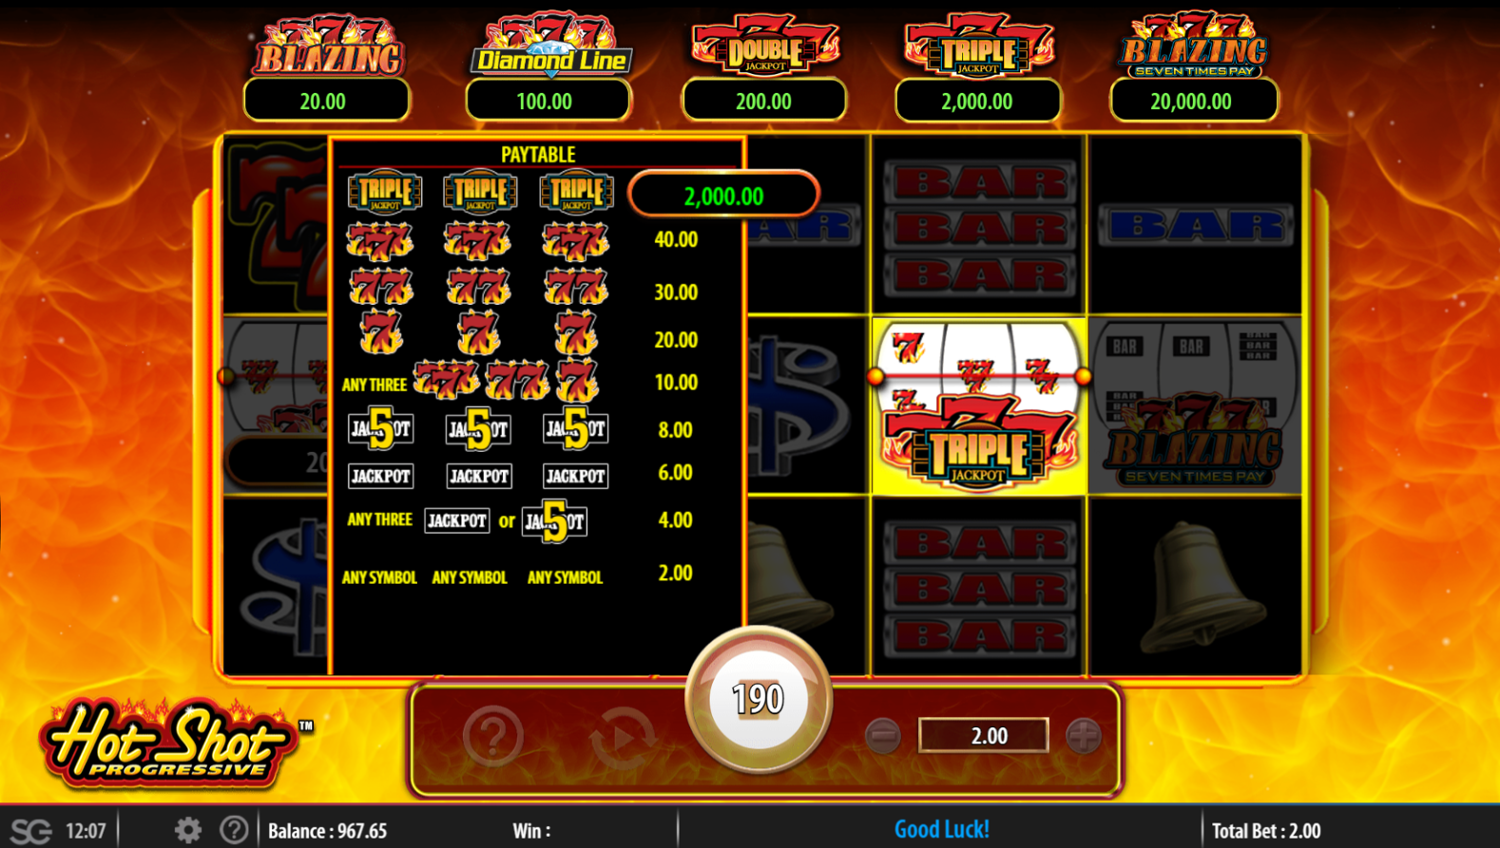 Hot Shot Progressive - Diamond Line scatter paytable